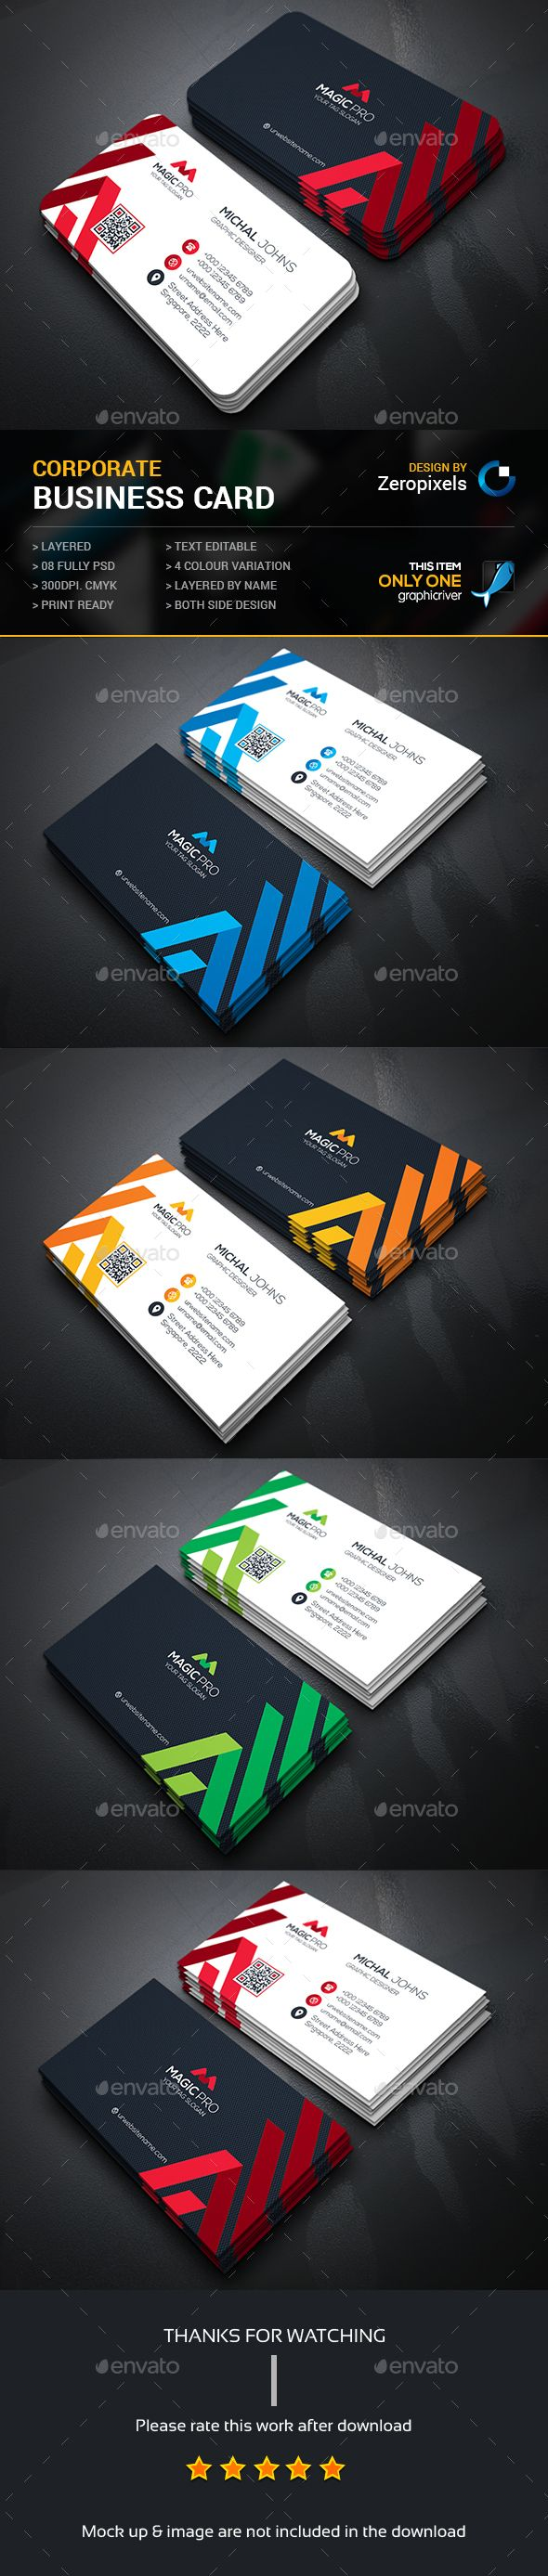 Buy Modern Business Card By Zeropixels On GraphicRiver FEATURES Easy Customizable And Editable In With Bleed CMYK Color Design 300 DPI